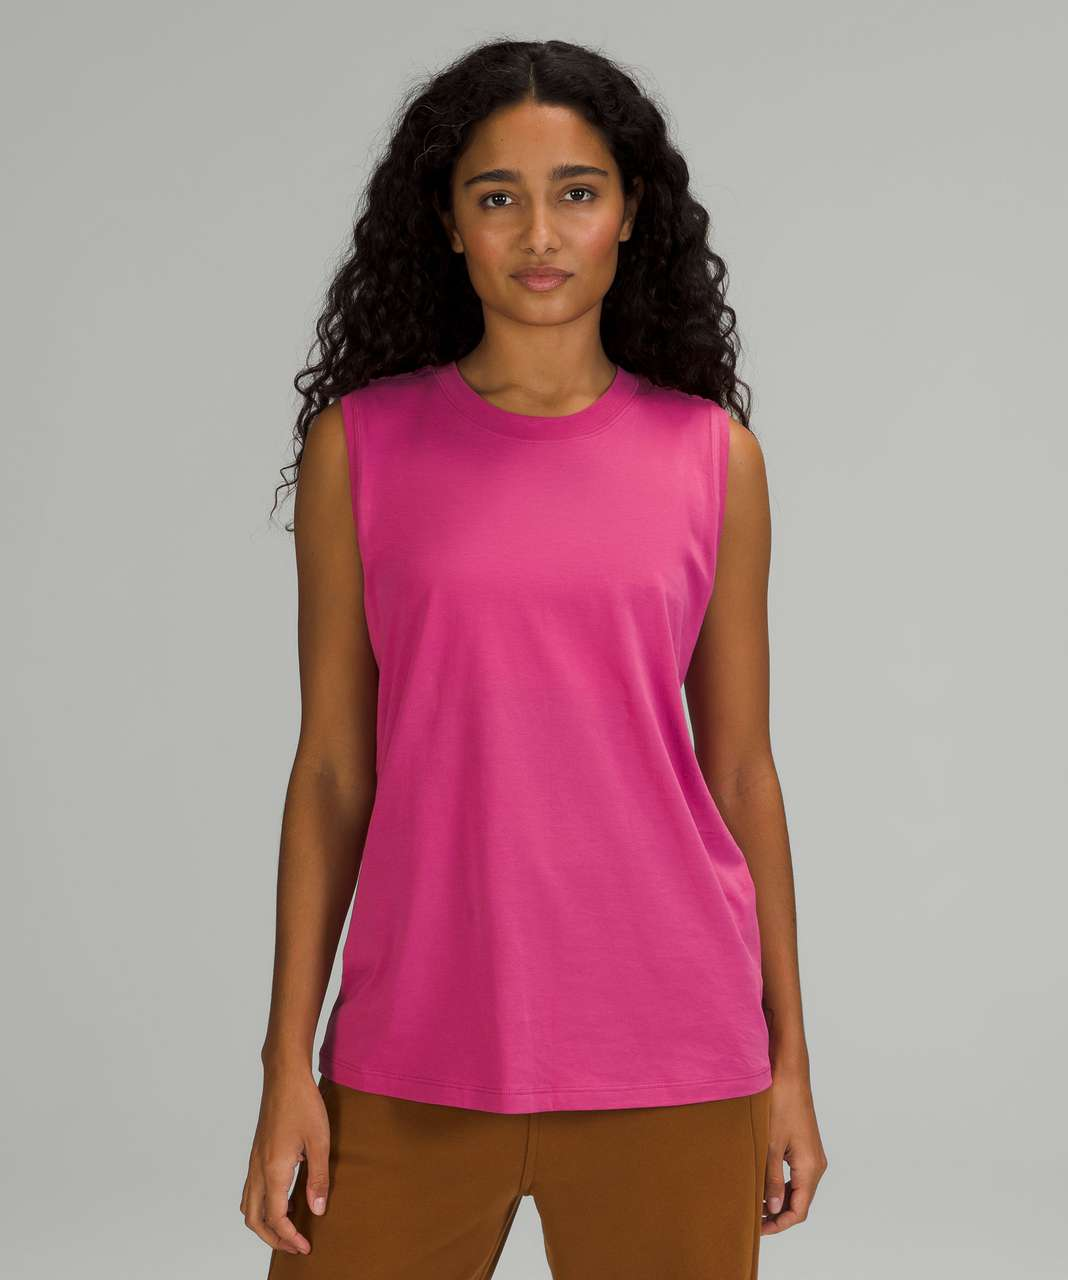 Lululemon All Yours Tank Top - Pink Lychee